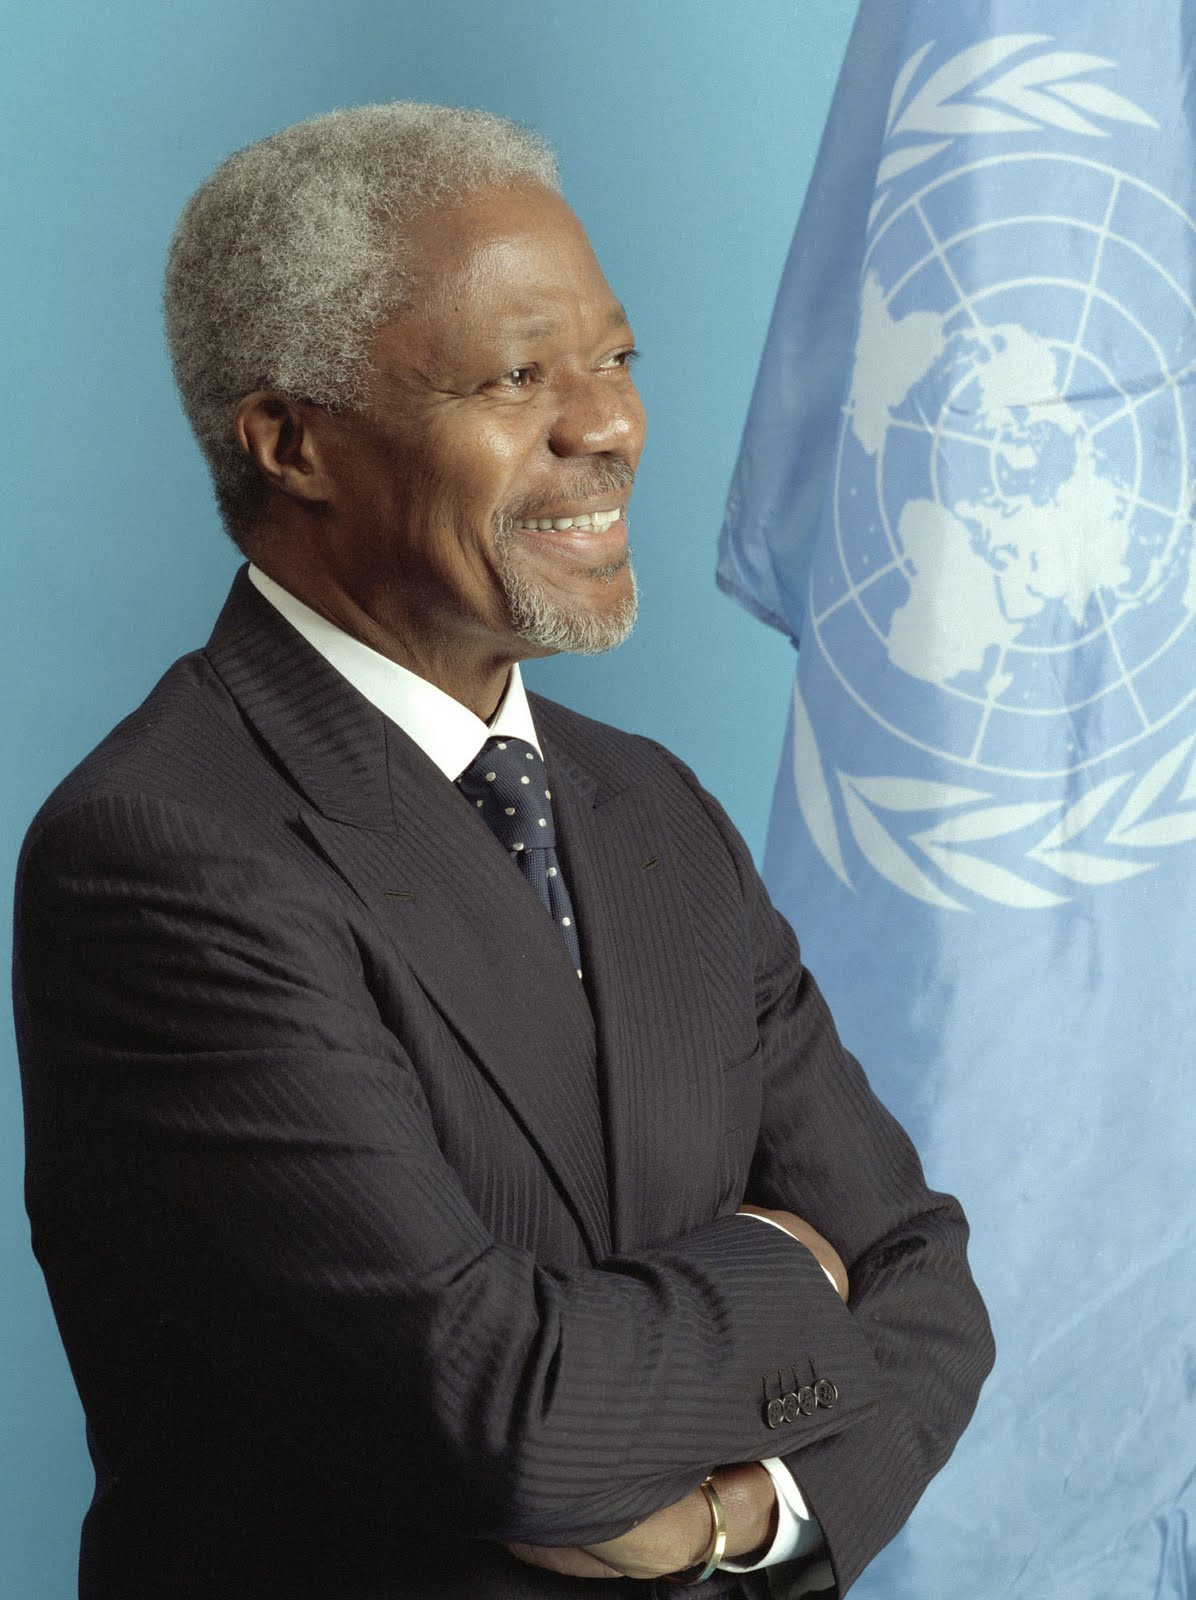 KOFFI ANNAN THE 7TH SECRETARY-GENERAL OF THE UNITED NATION ...